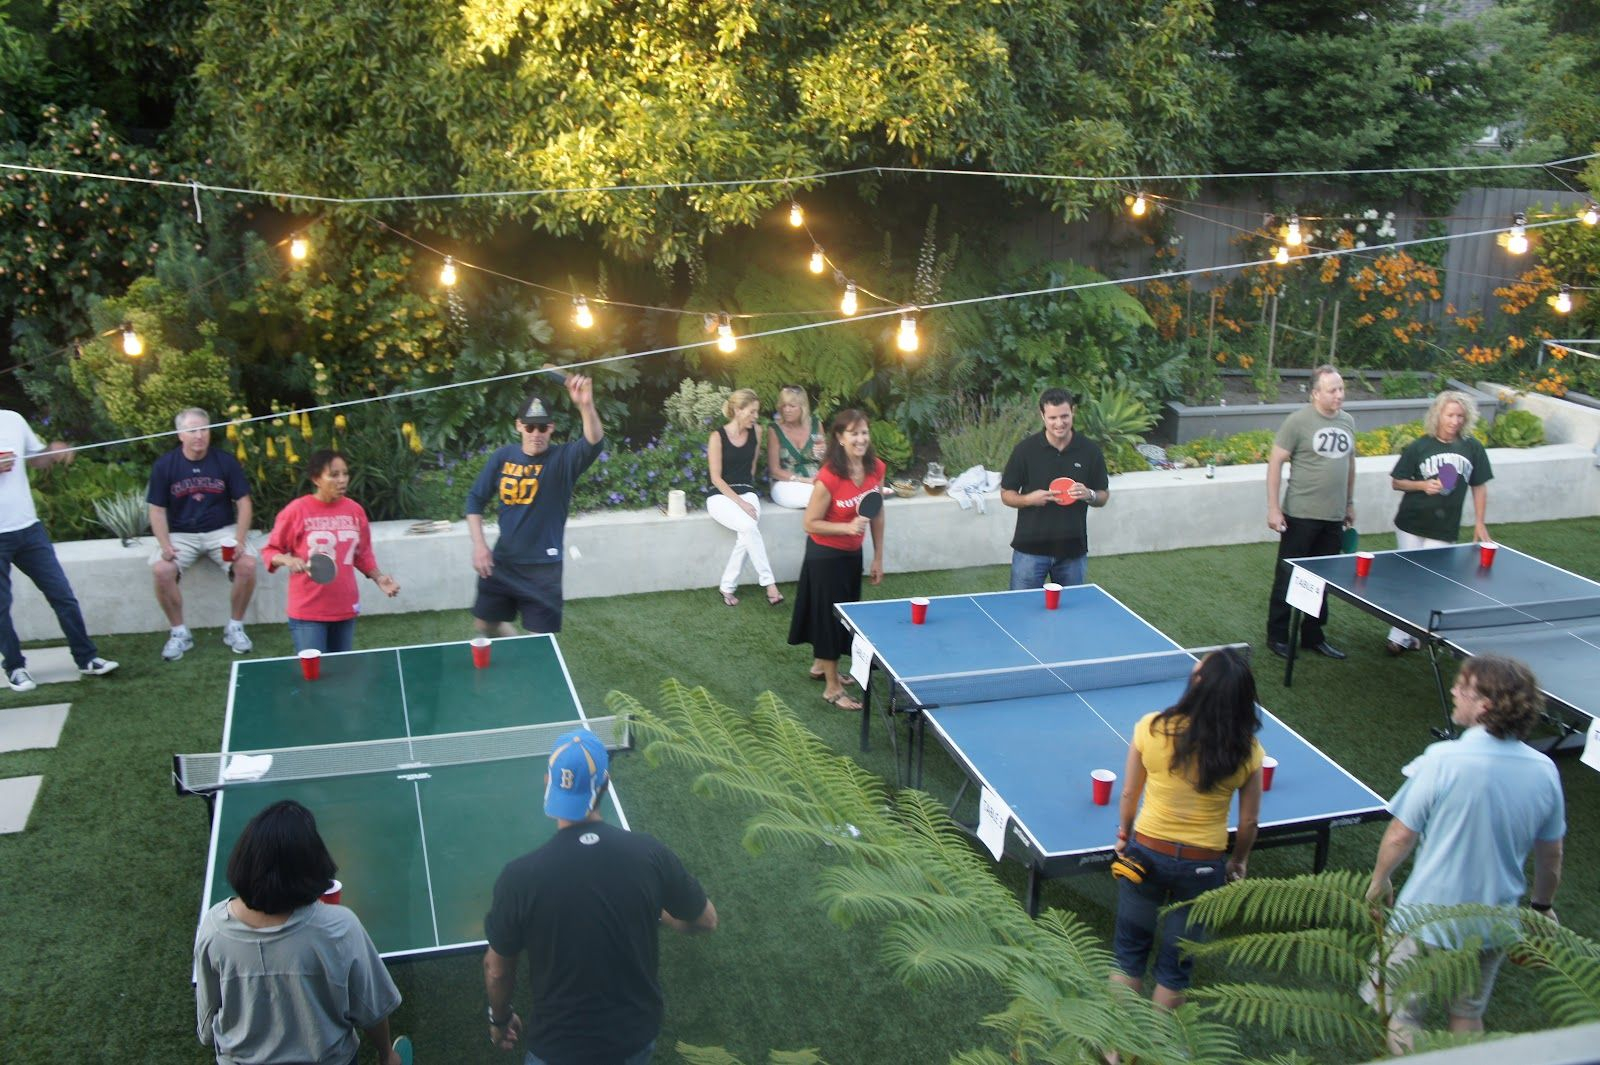 Awesome Backyard Party Ideas Google Search Graduation Party intended for Graduation Backyard Party Ideas